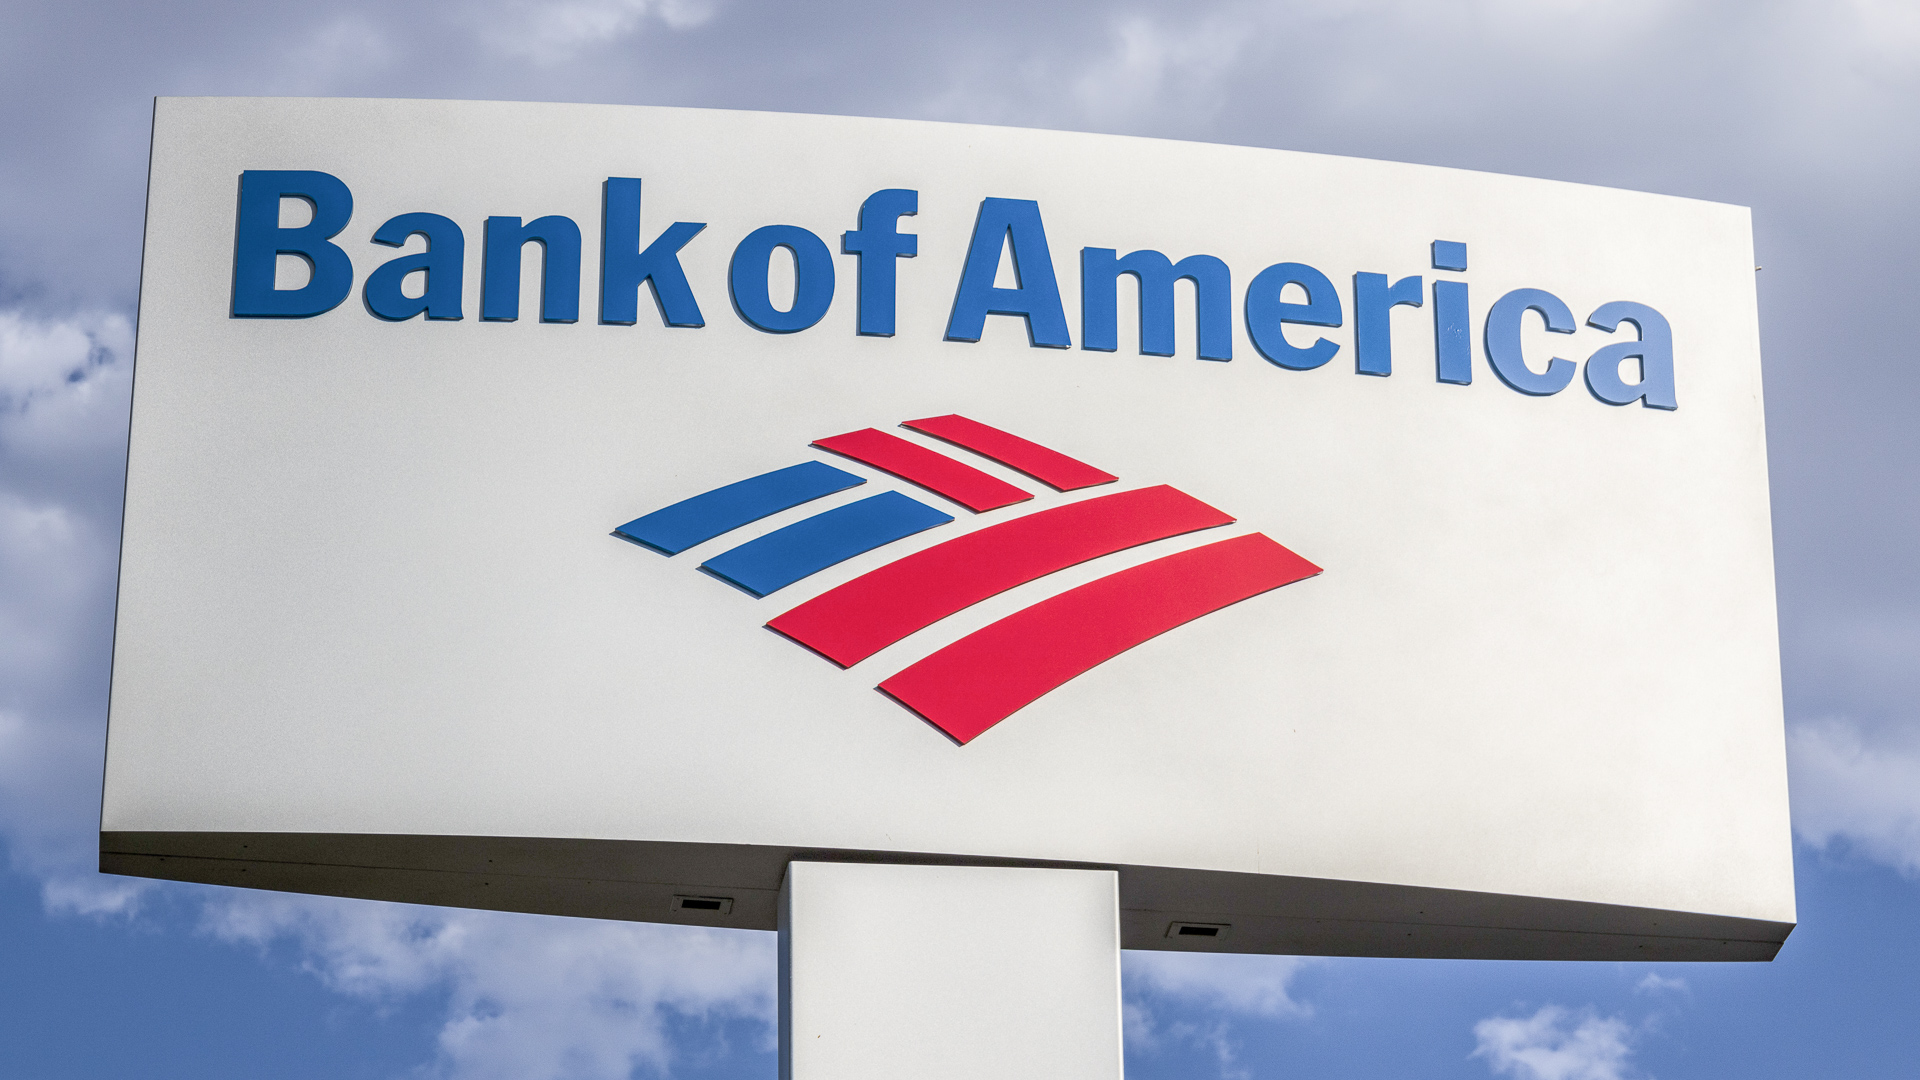 How to Set Up Bank of America Direct Deposit GOBankingRates 1920x1080